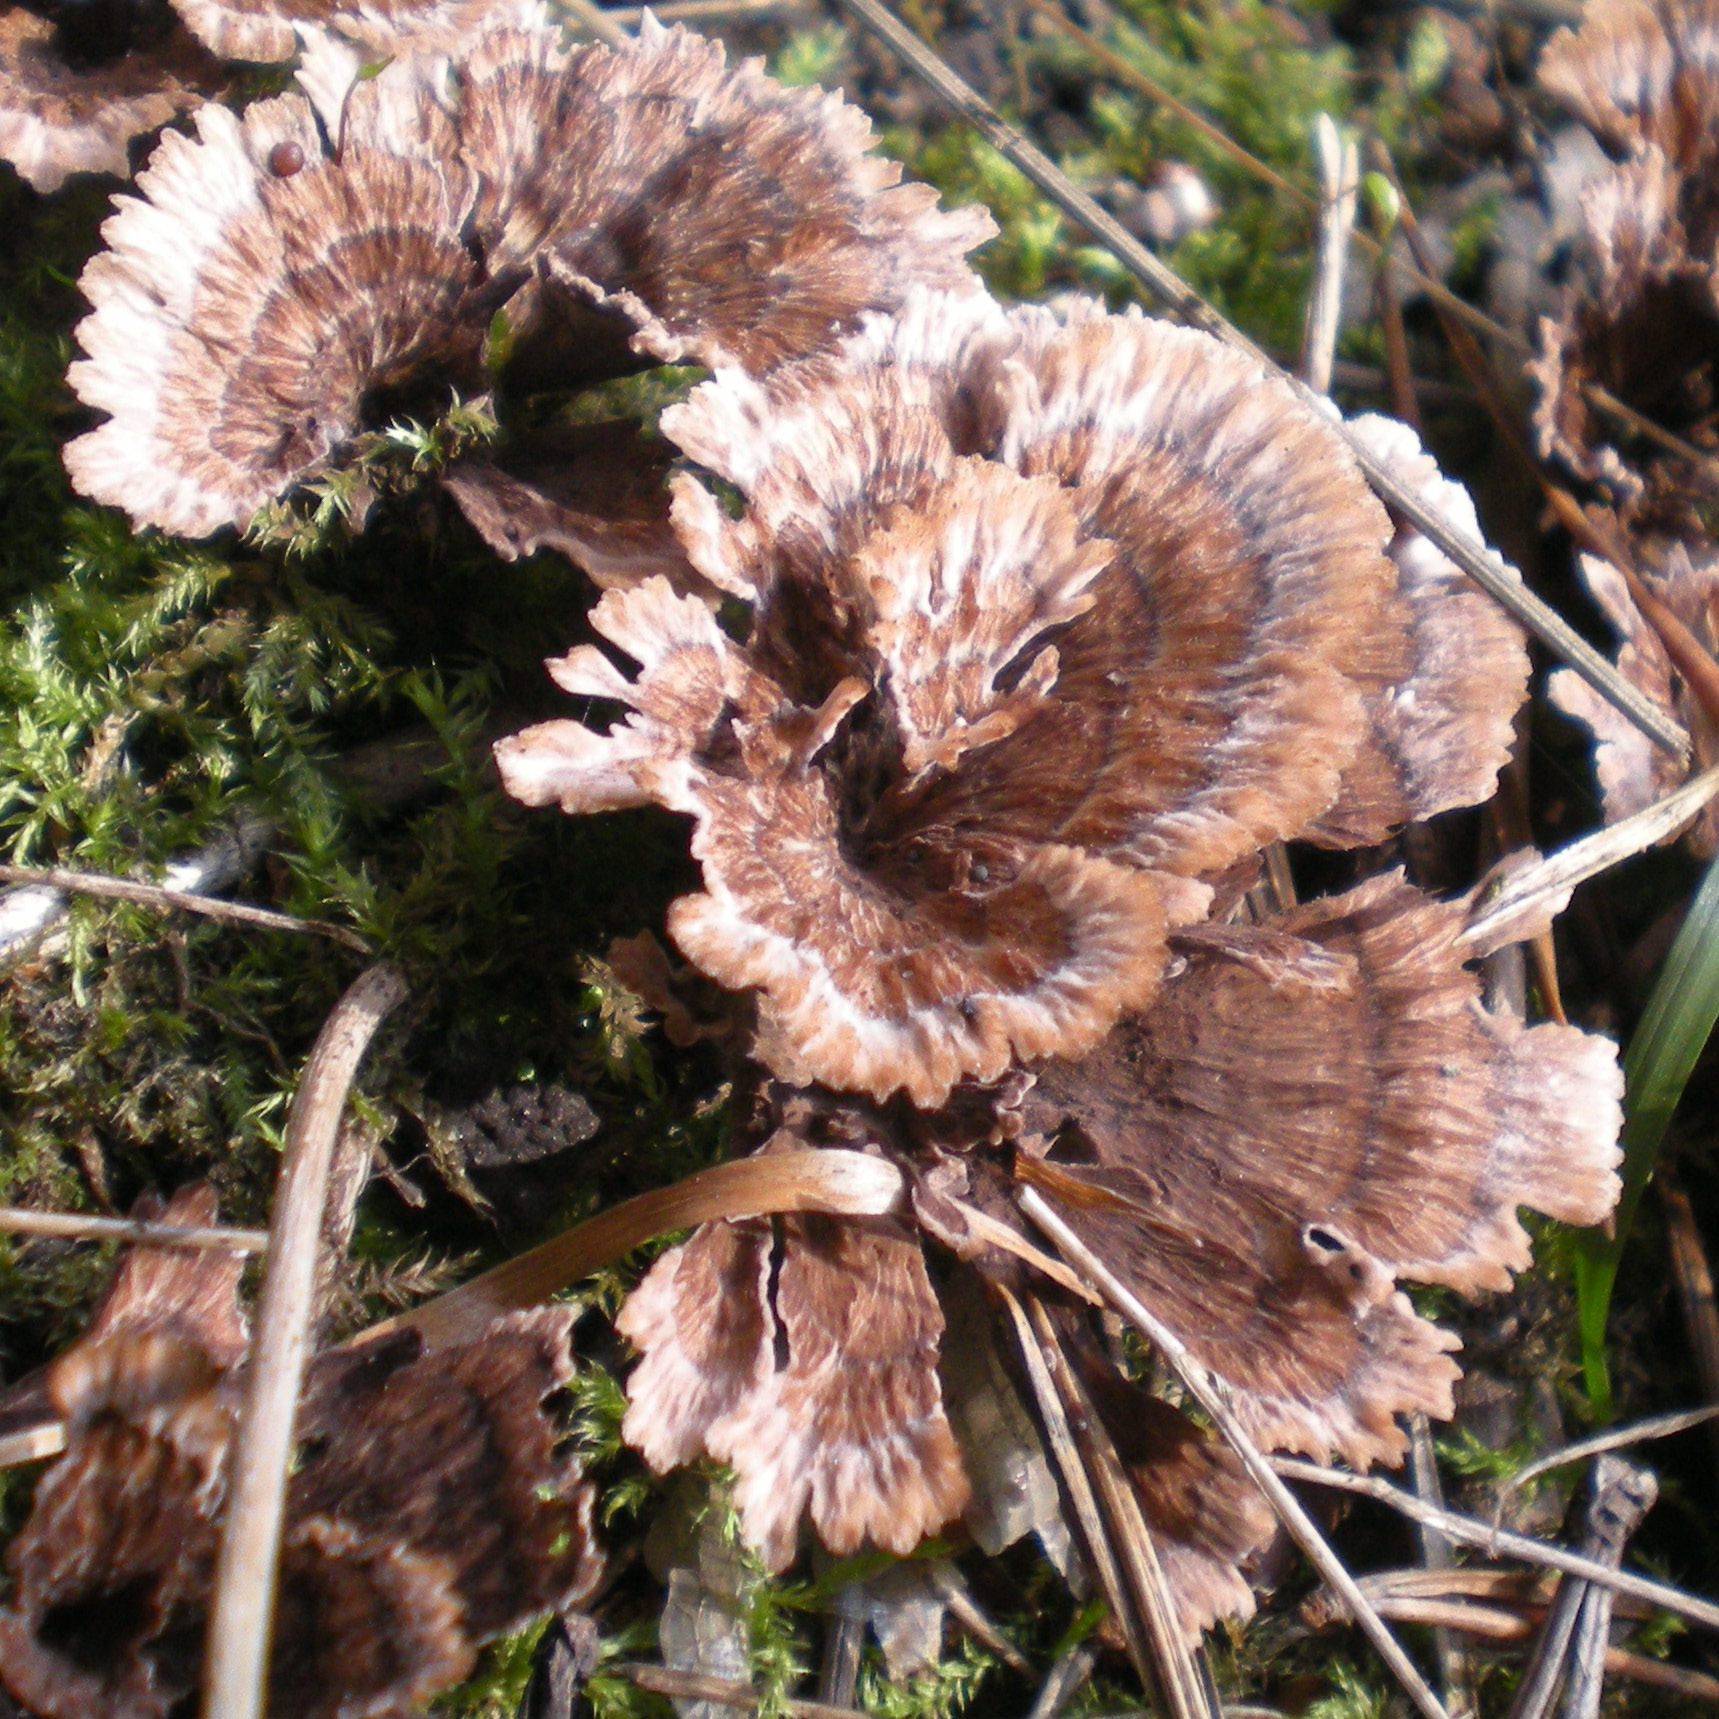 Image of Thelephora